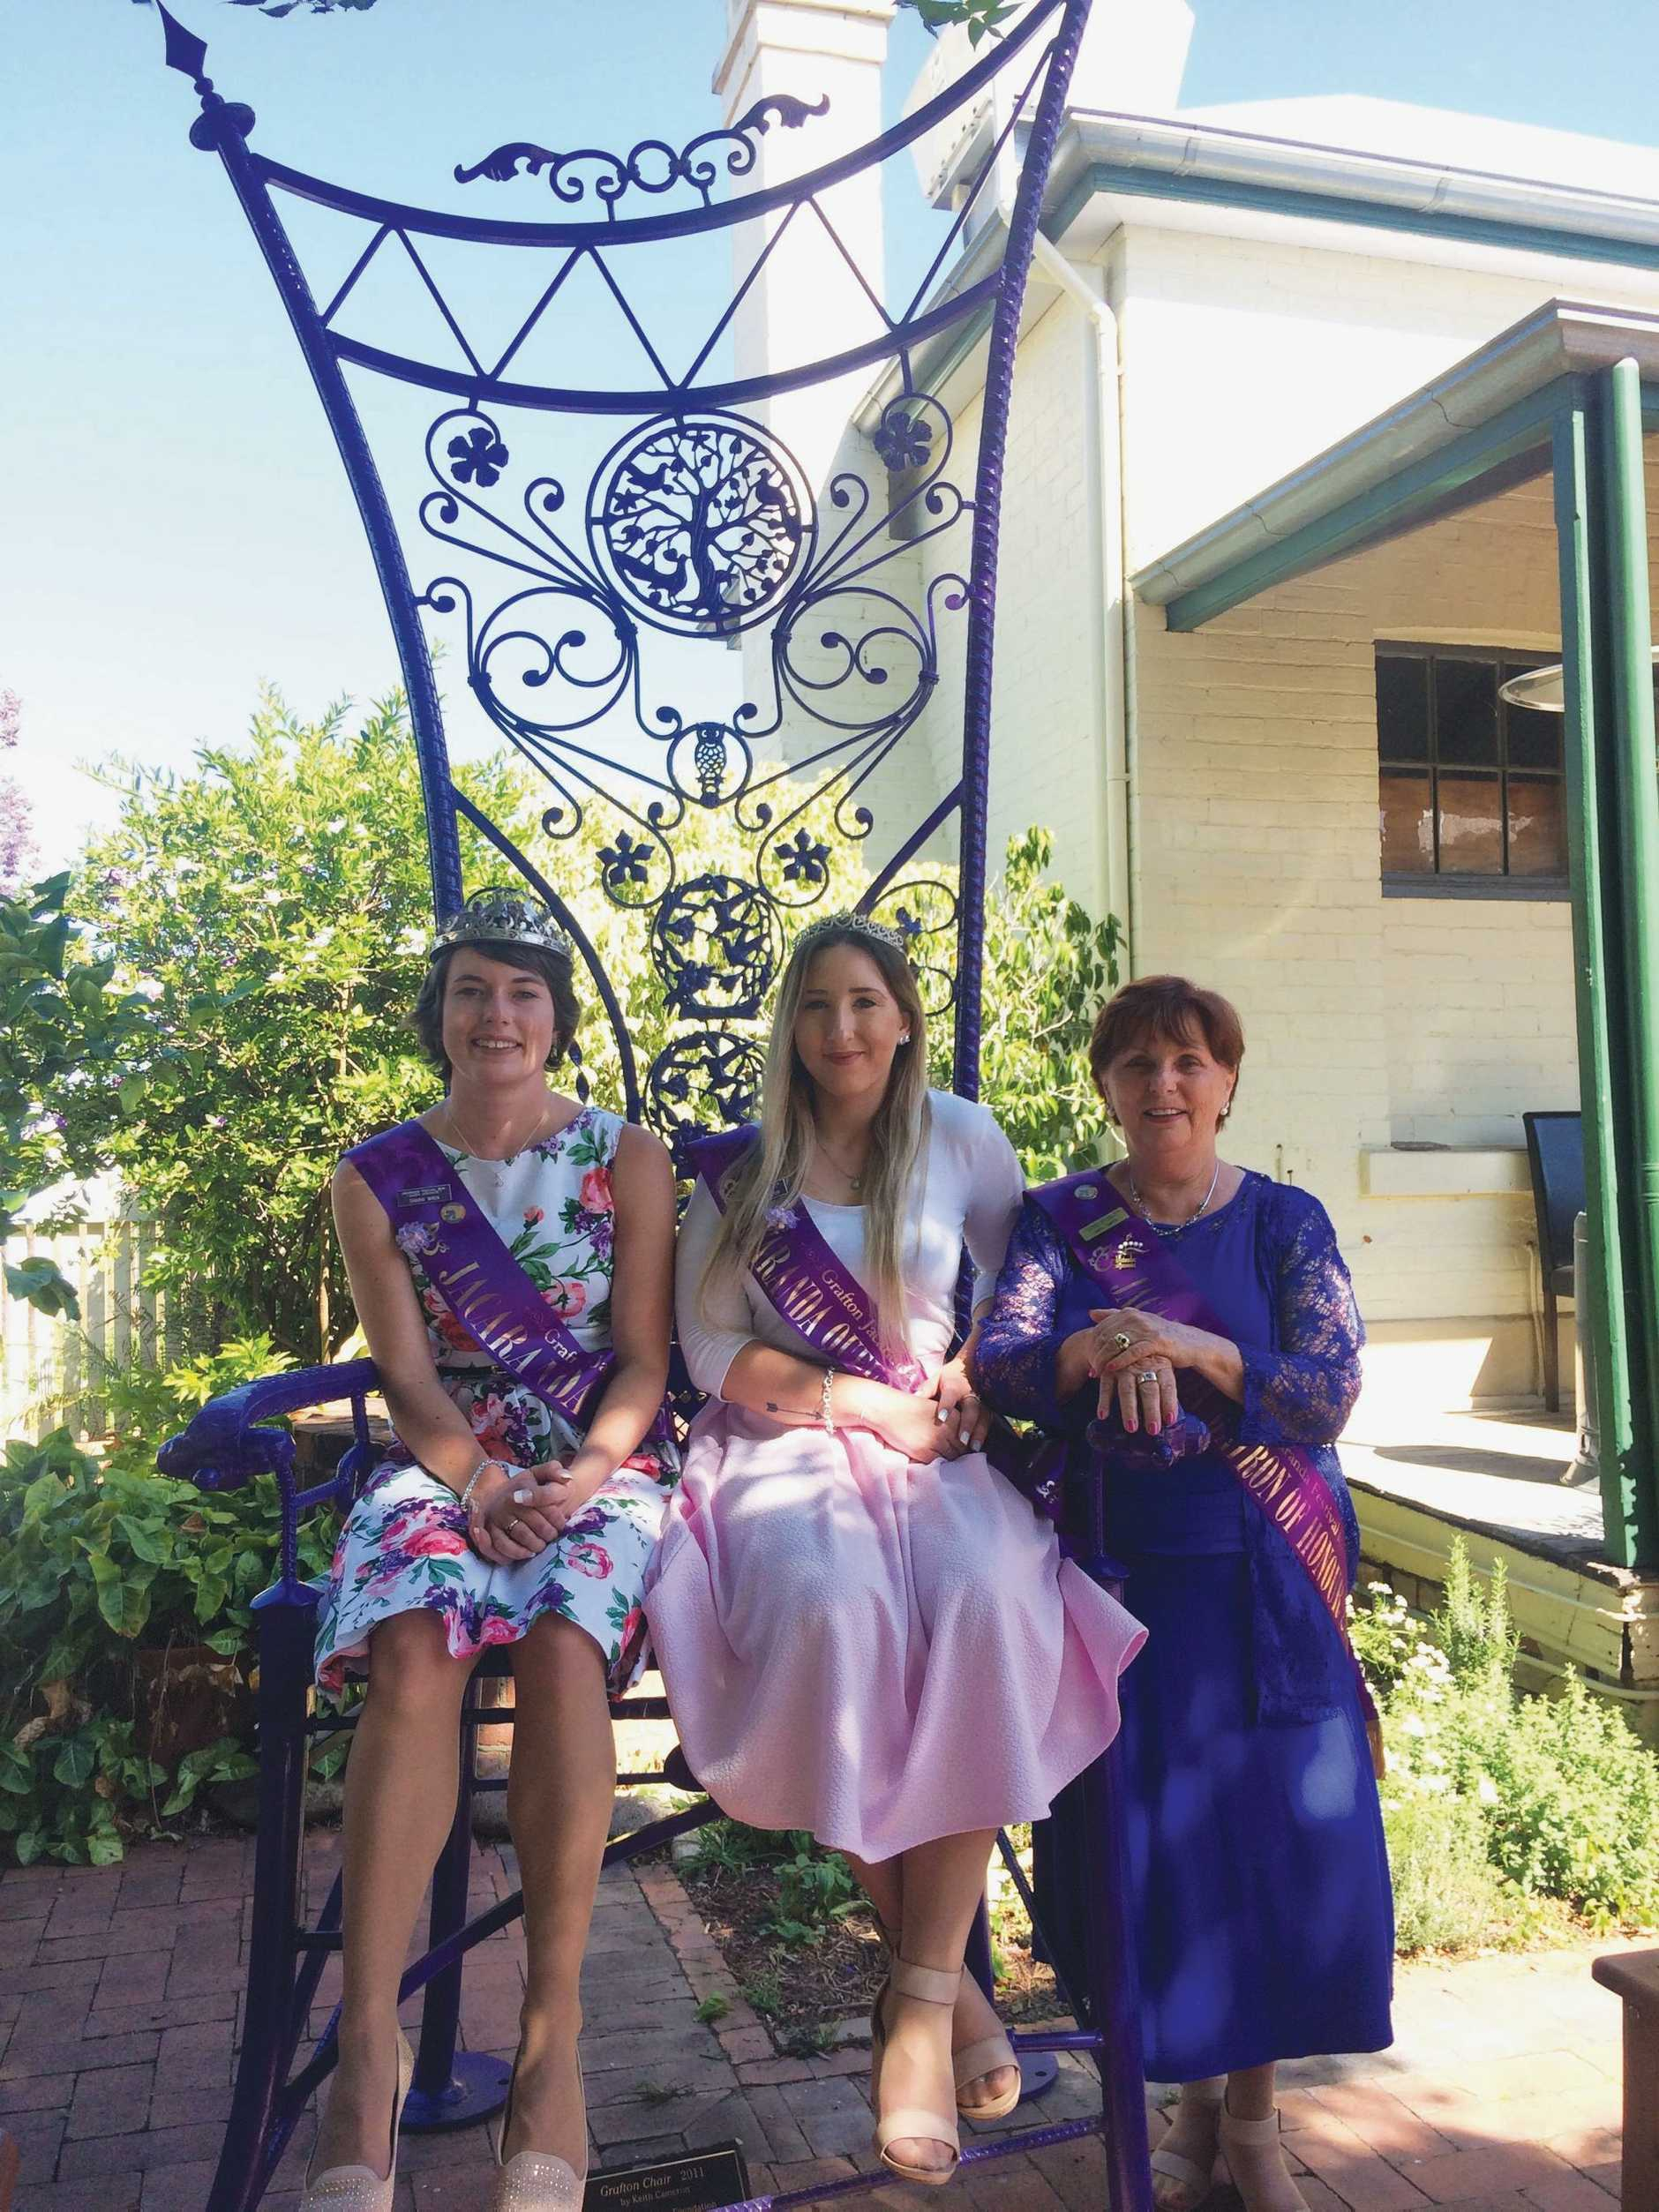 A portion of the Jacaranda Queen's royal party in the gallery's courtyard during a recent visit. From left: Jacaranda Queen Sharni Wren, Party Princess Shannon Carter and Matron of Honour Carol Smith.